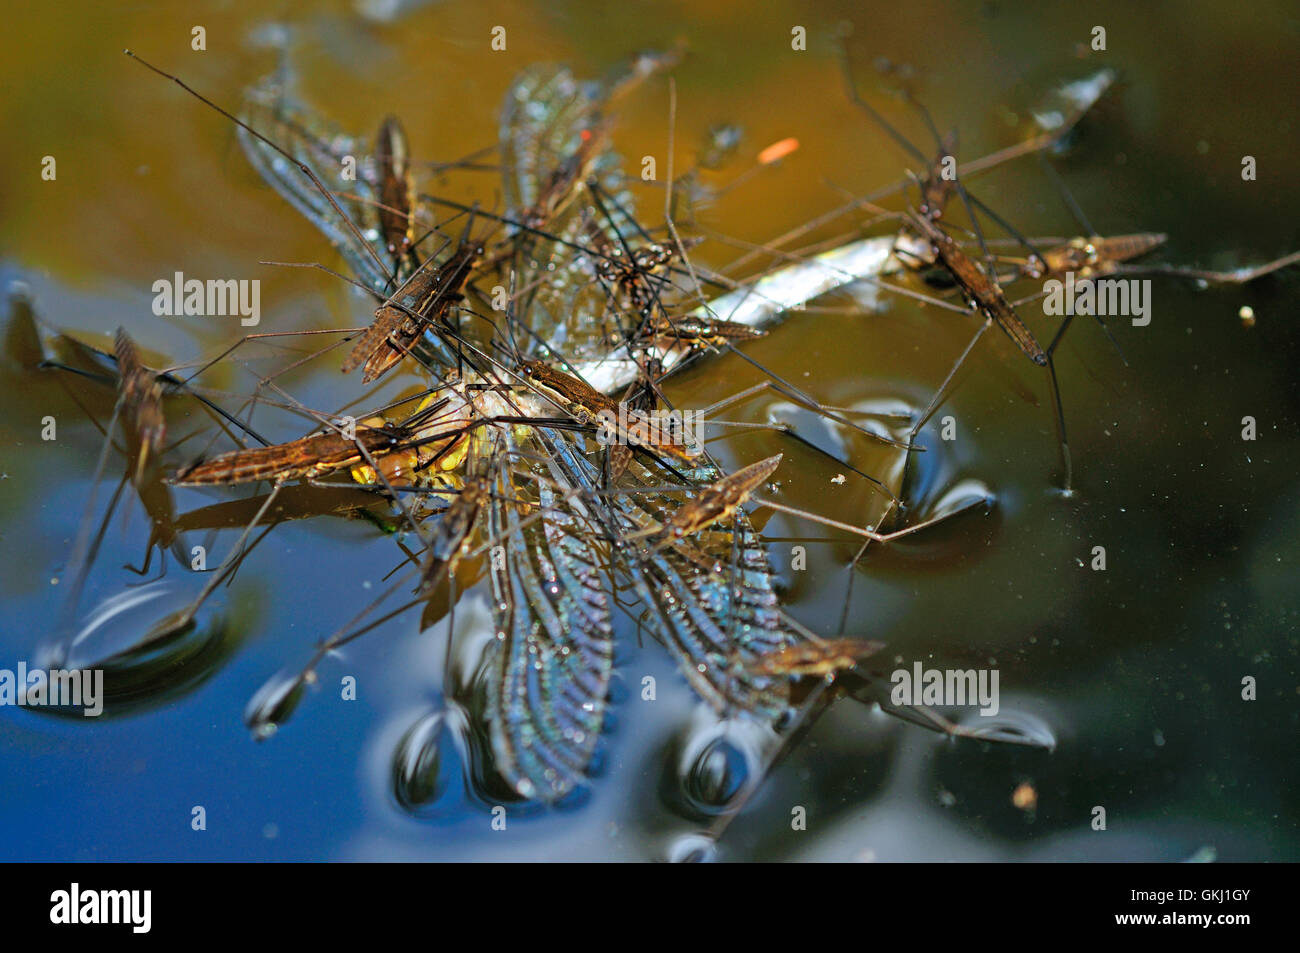 Pond skaters or Water Strider (Gerris lacustris) devouring a dragonfly. - Stock Image